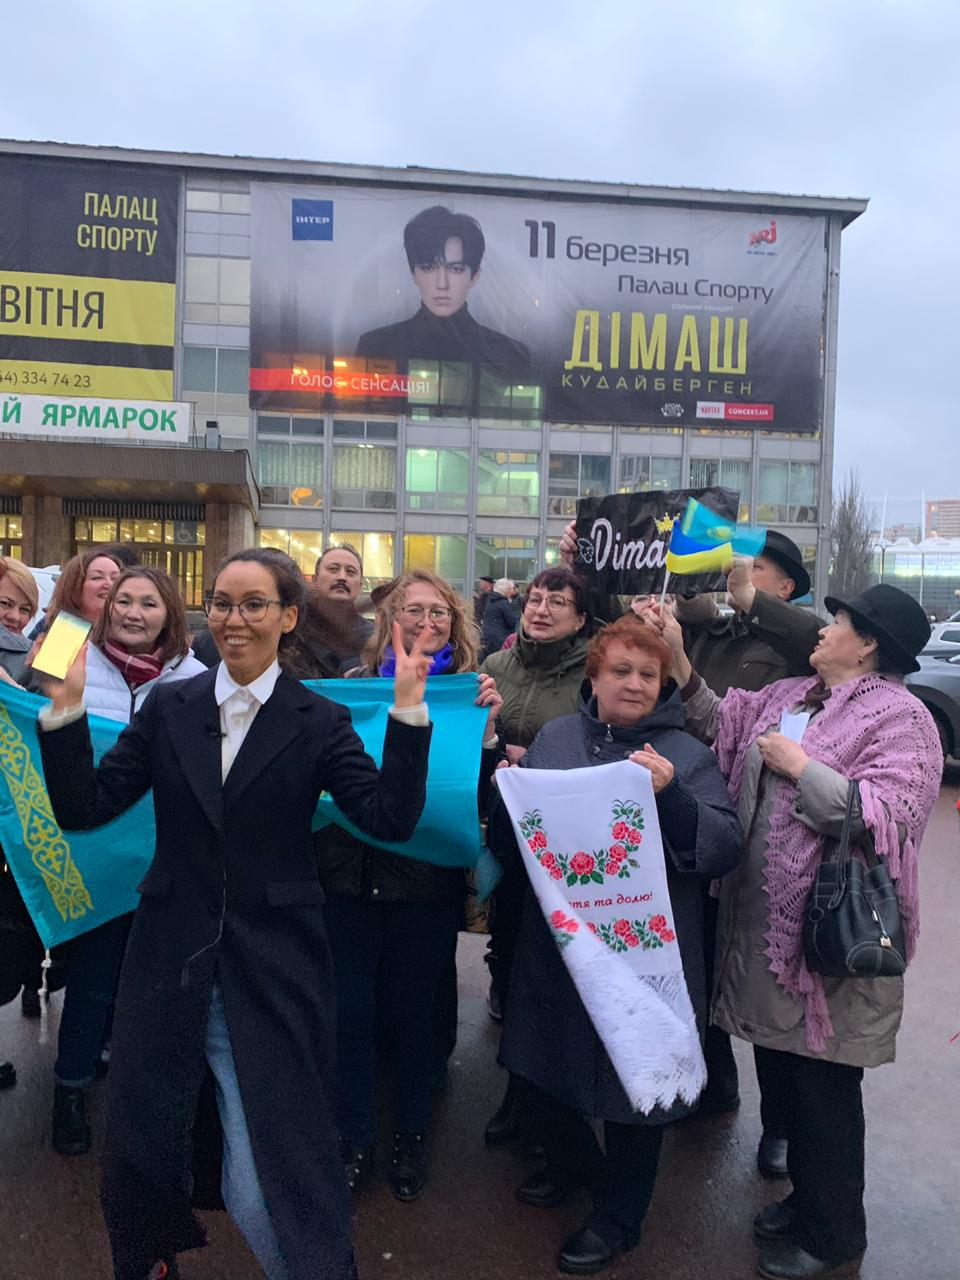 Fan flew to a concert for 36 hours to see Dimash in Kyiv